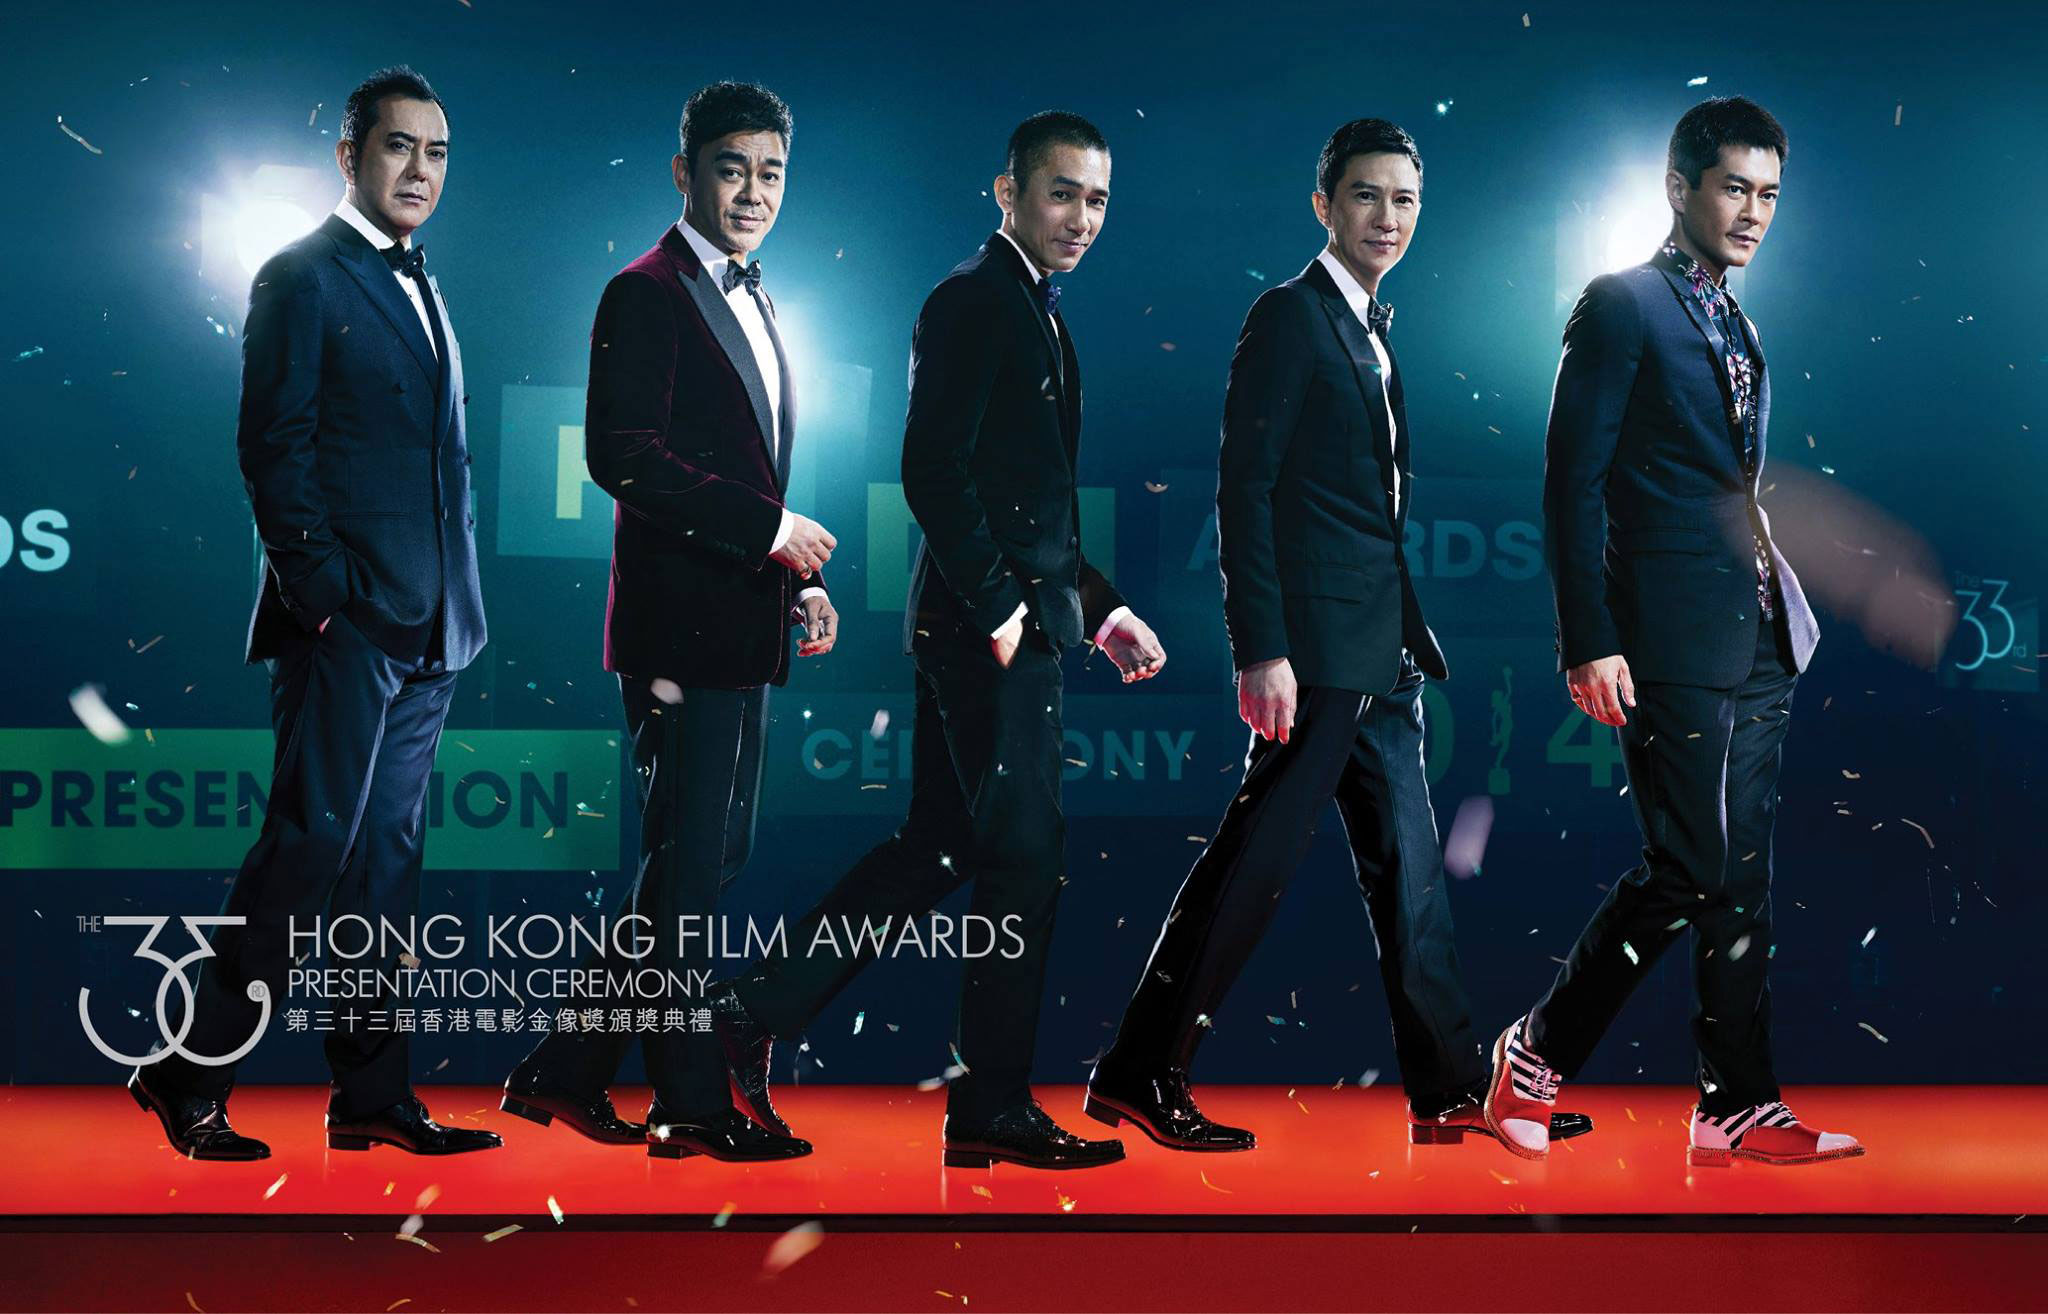 Hong Kong Film Awards 2014 best actor nominees